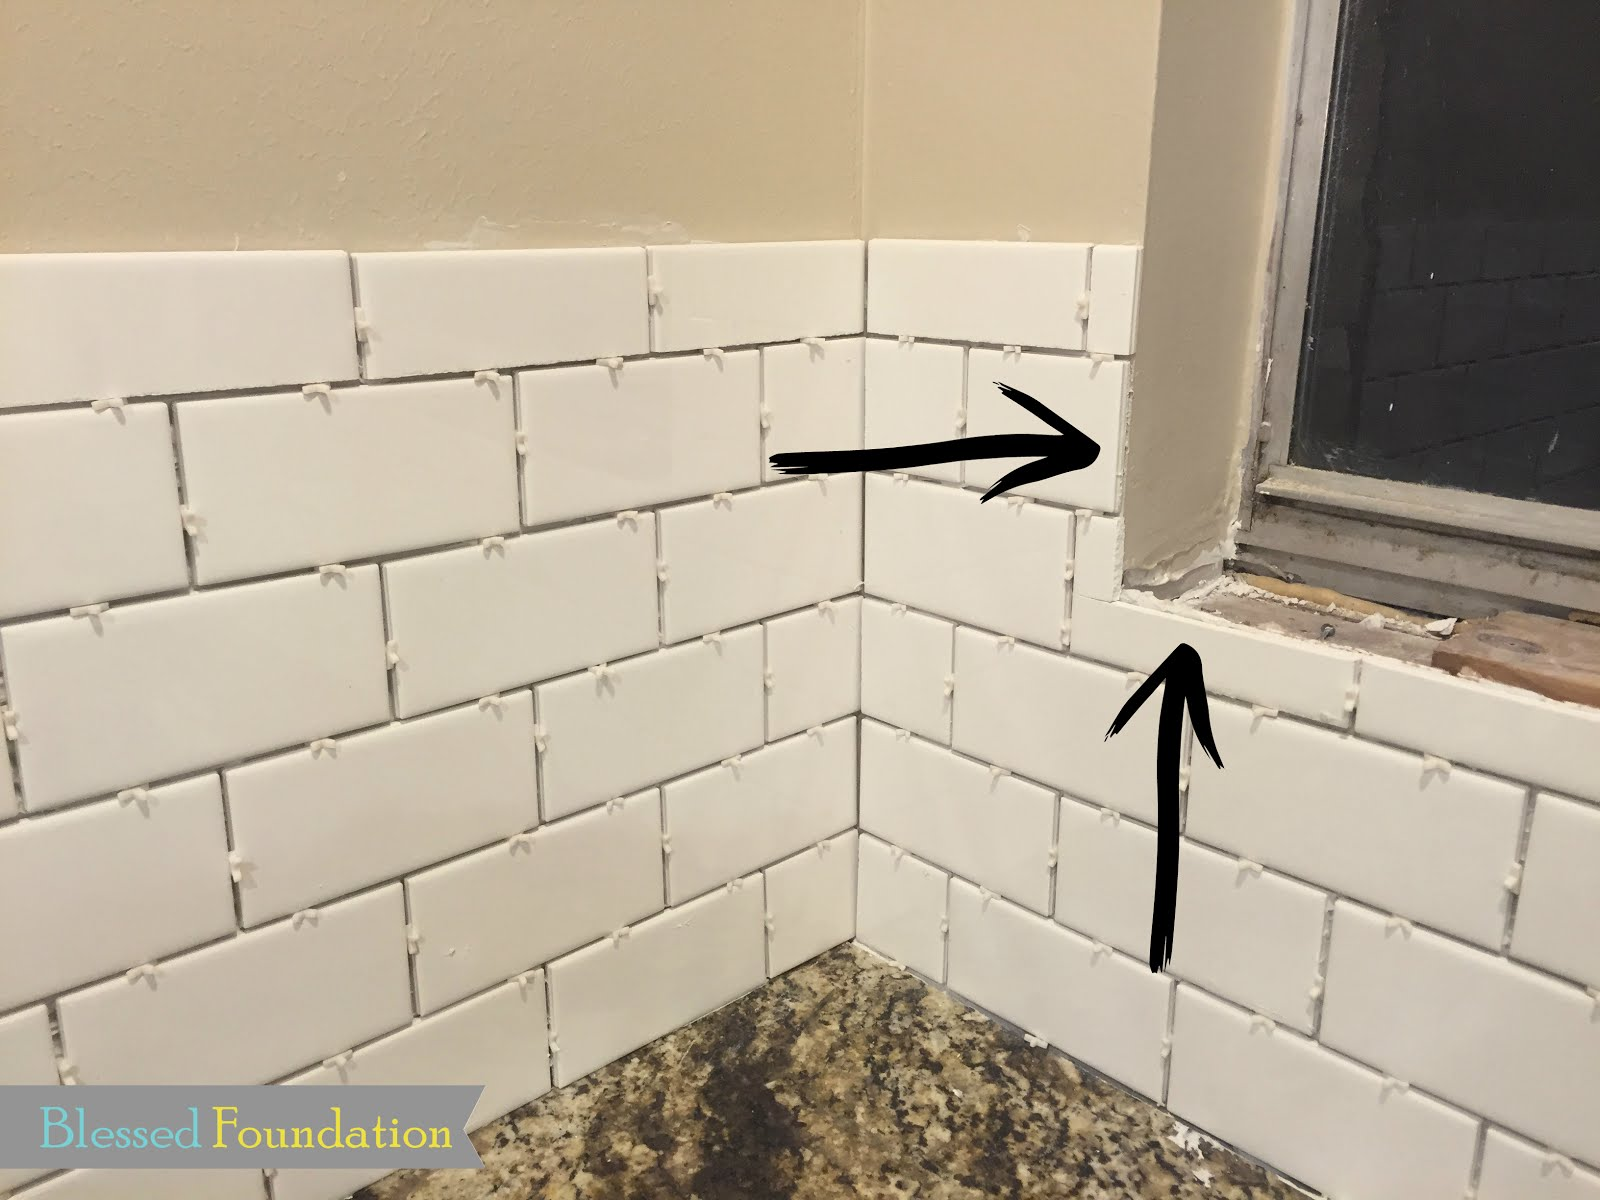 Blessed Foundation Post 41 Kitchen Backsplash